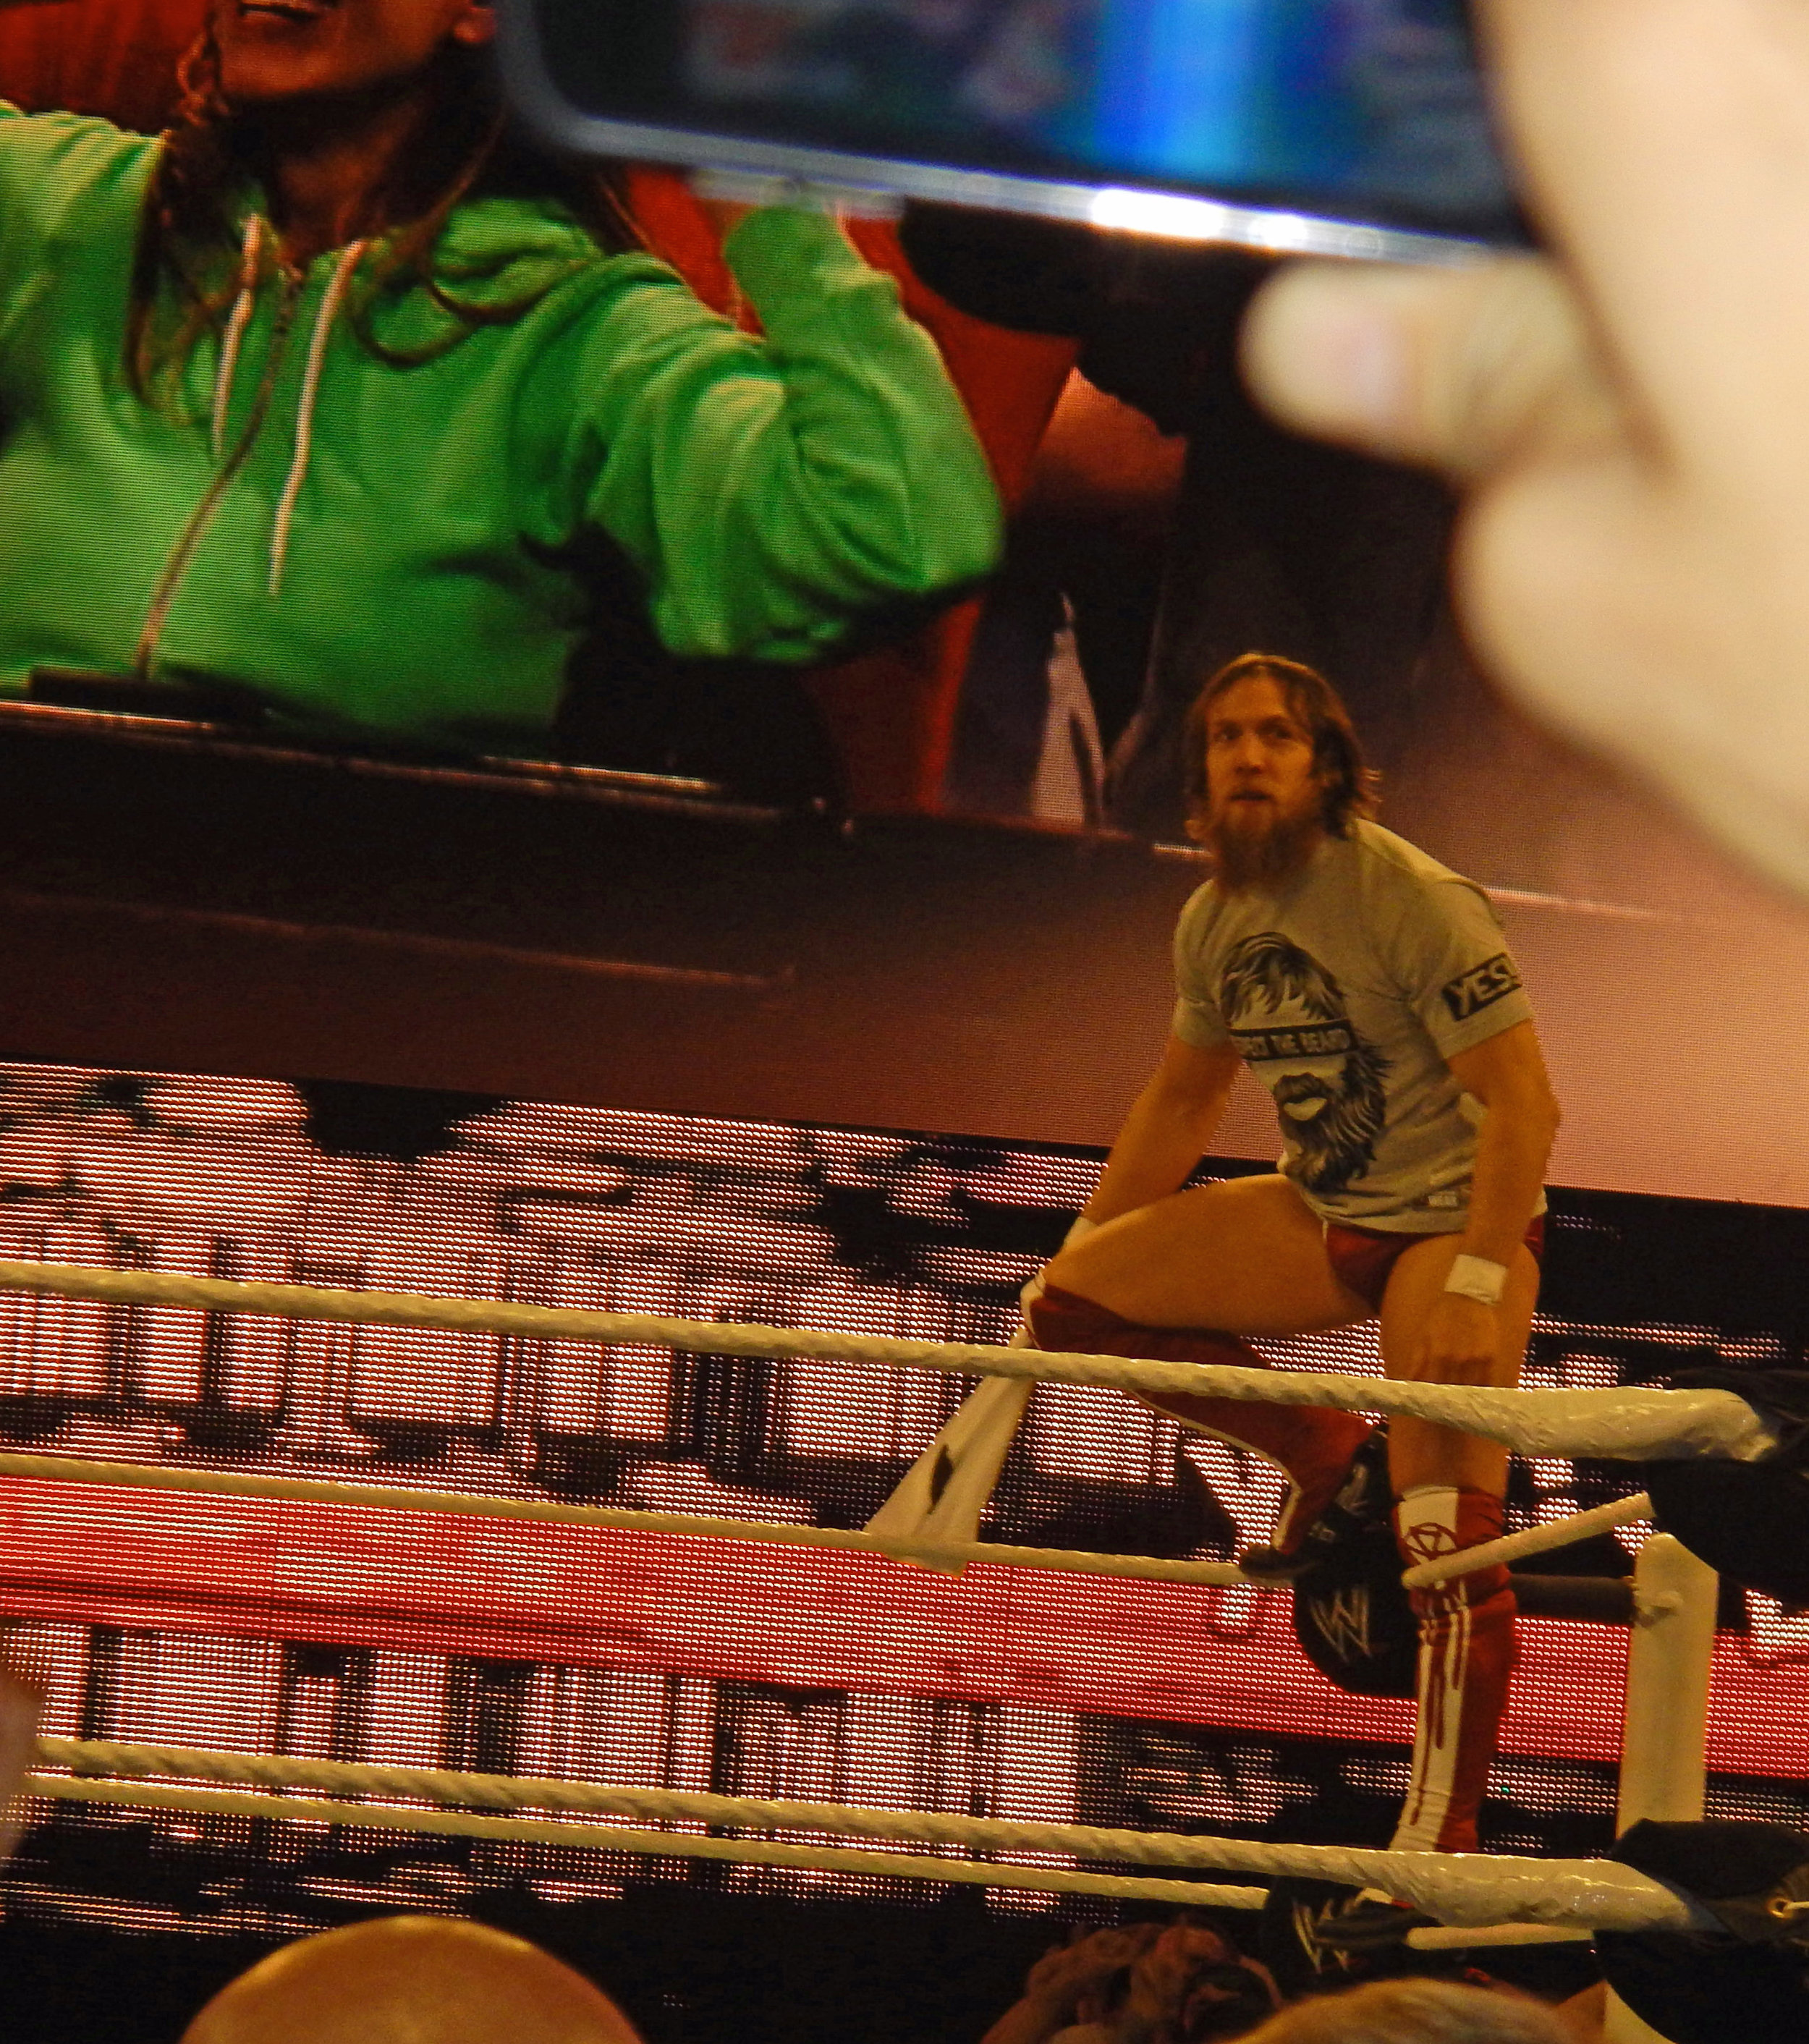 Daniel Bryan poses for the fans during WWE Monday Night Raw at Allstate Arena in suburban Chicago in September 2013. (Photo by Mike Pankow)